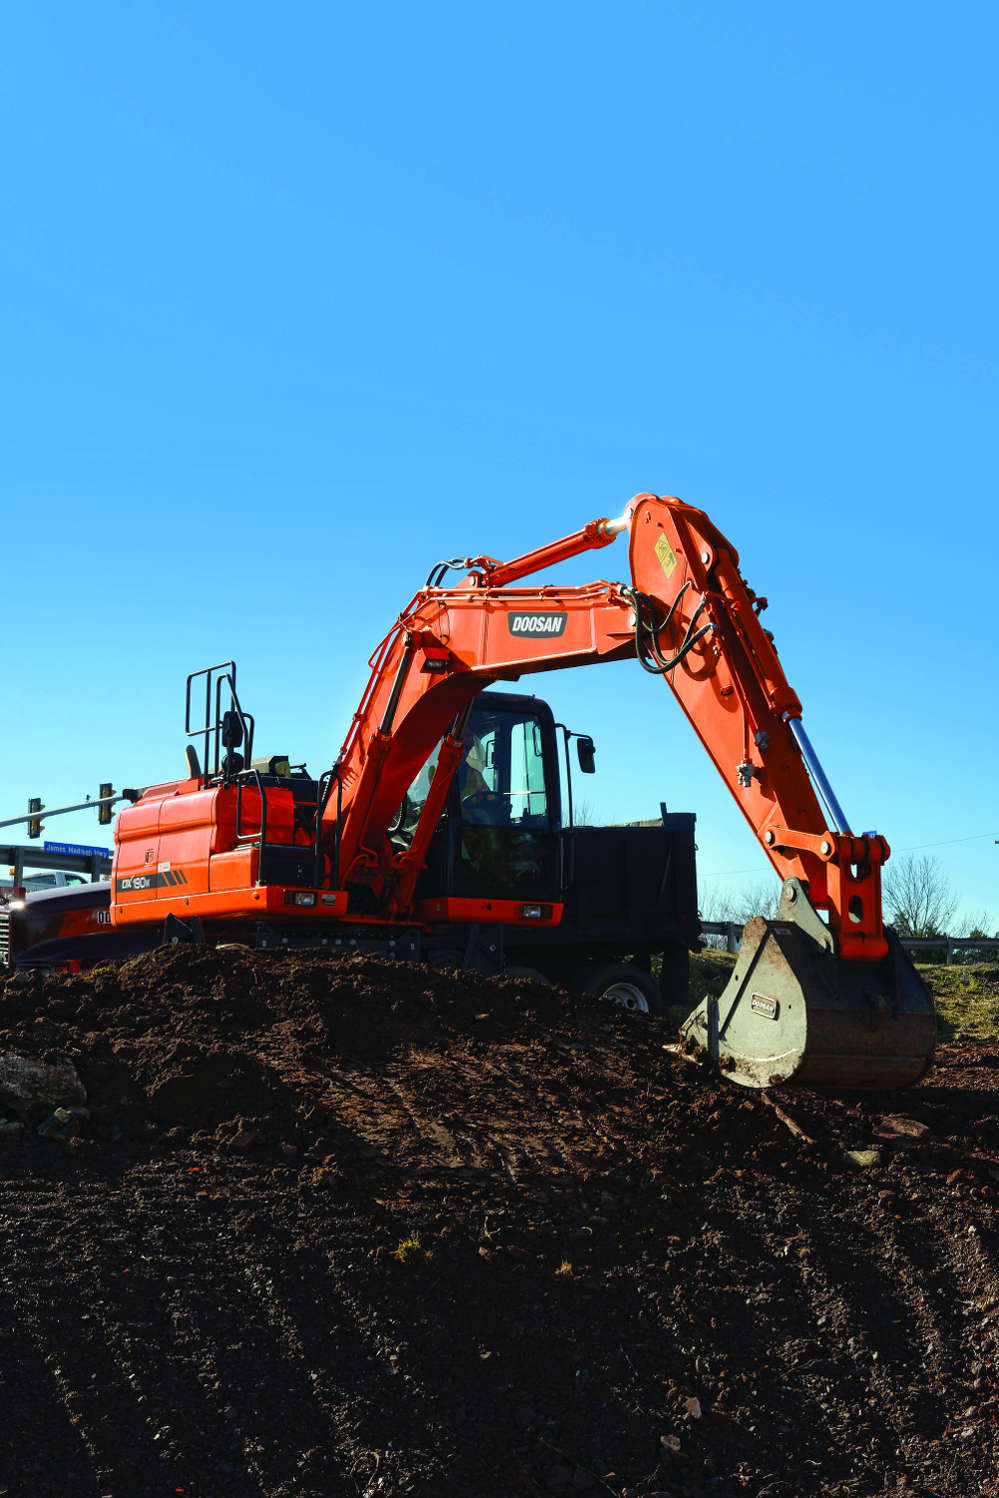 Lane Construction's first DX190W wheel excavator was purchased in 2011.